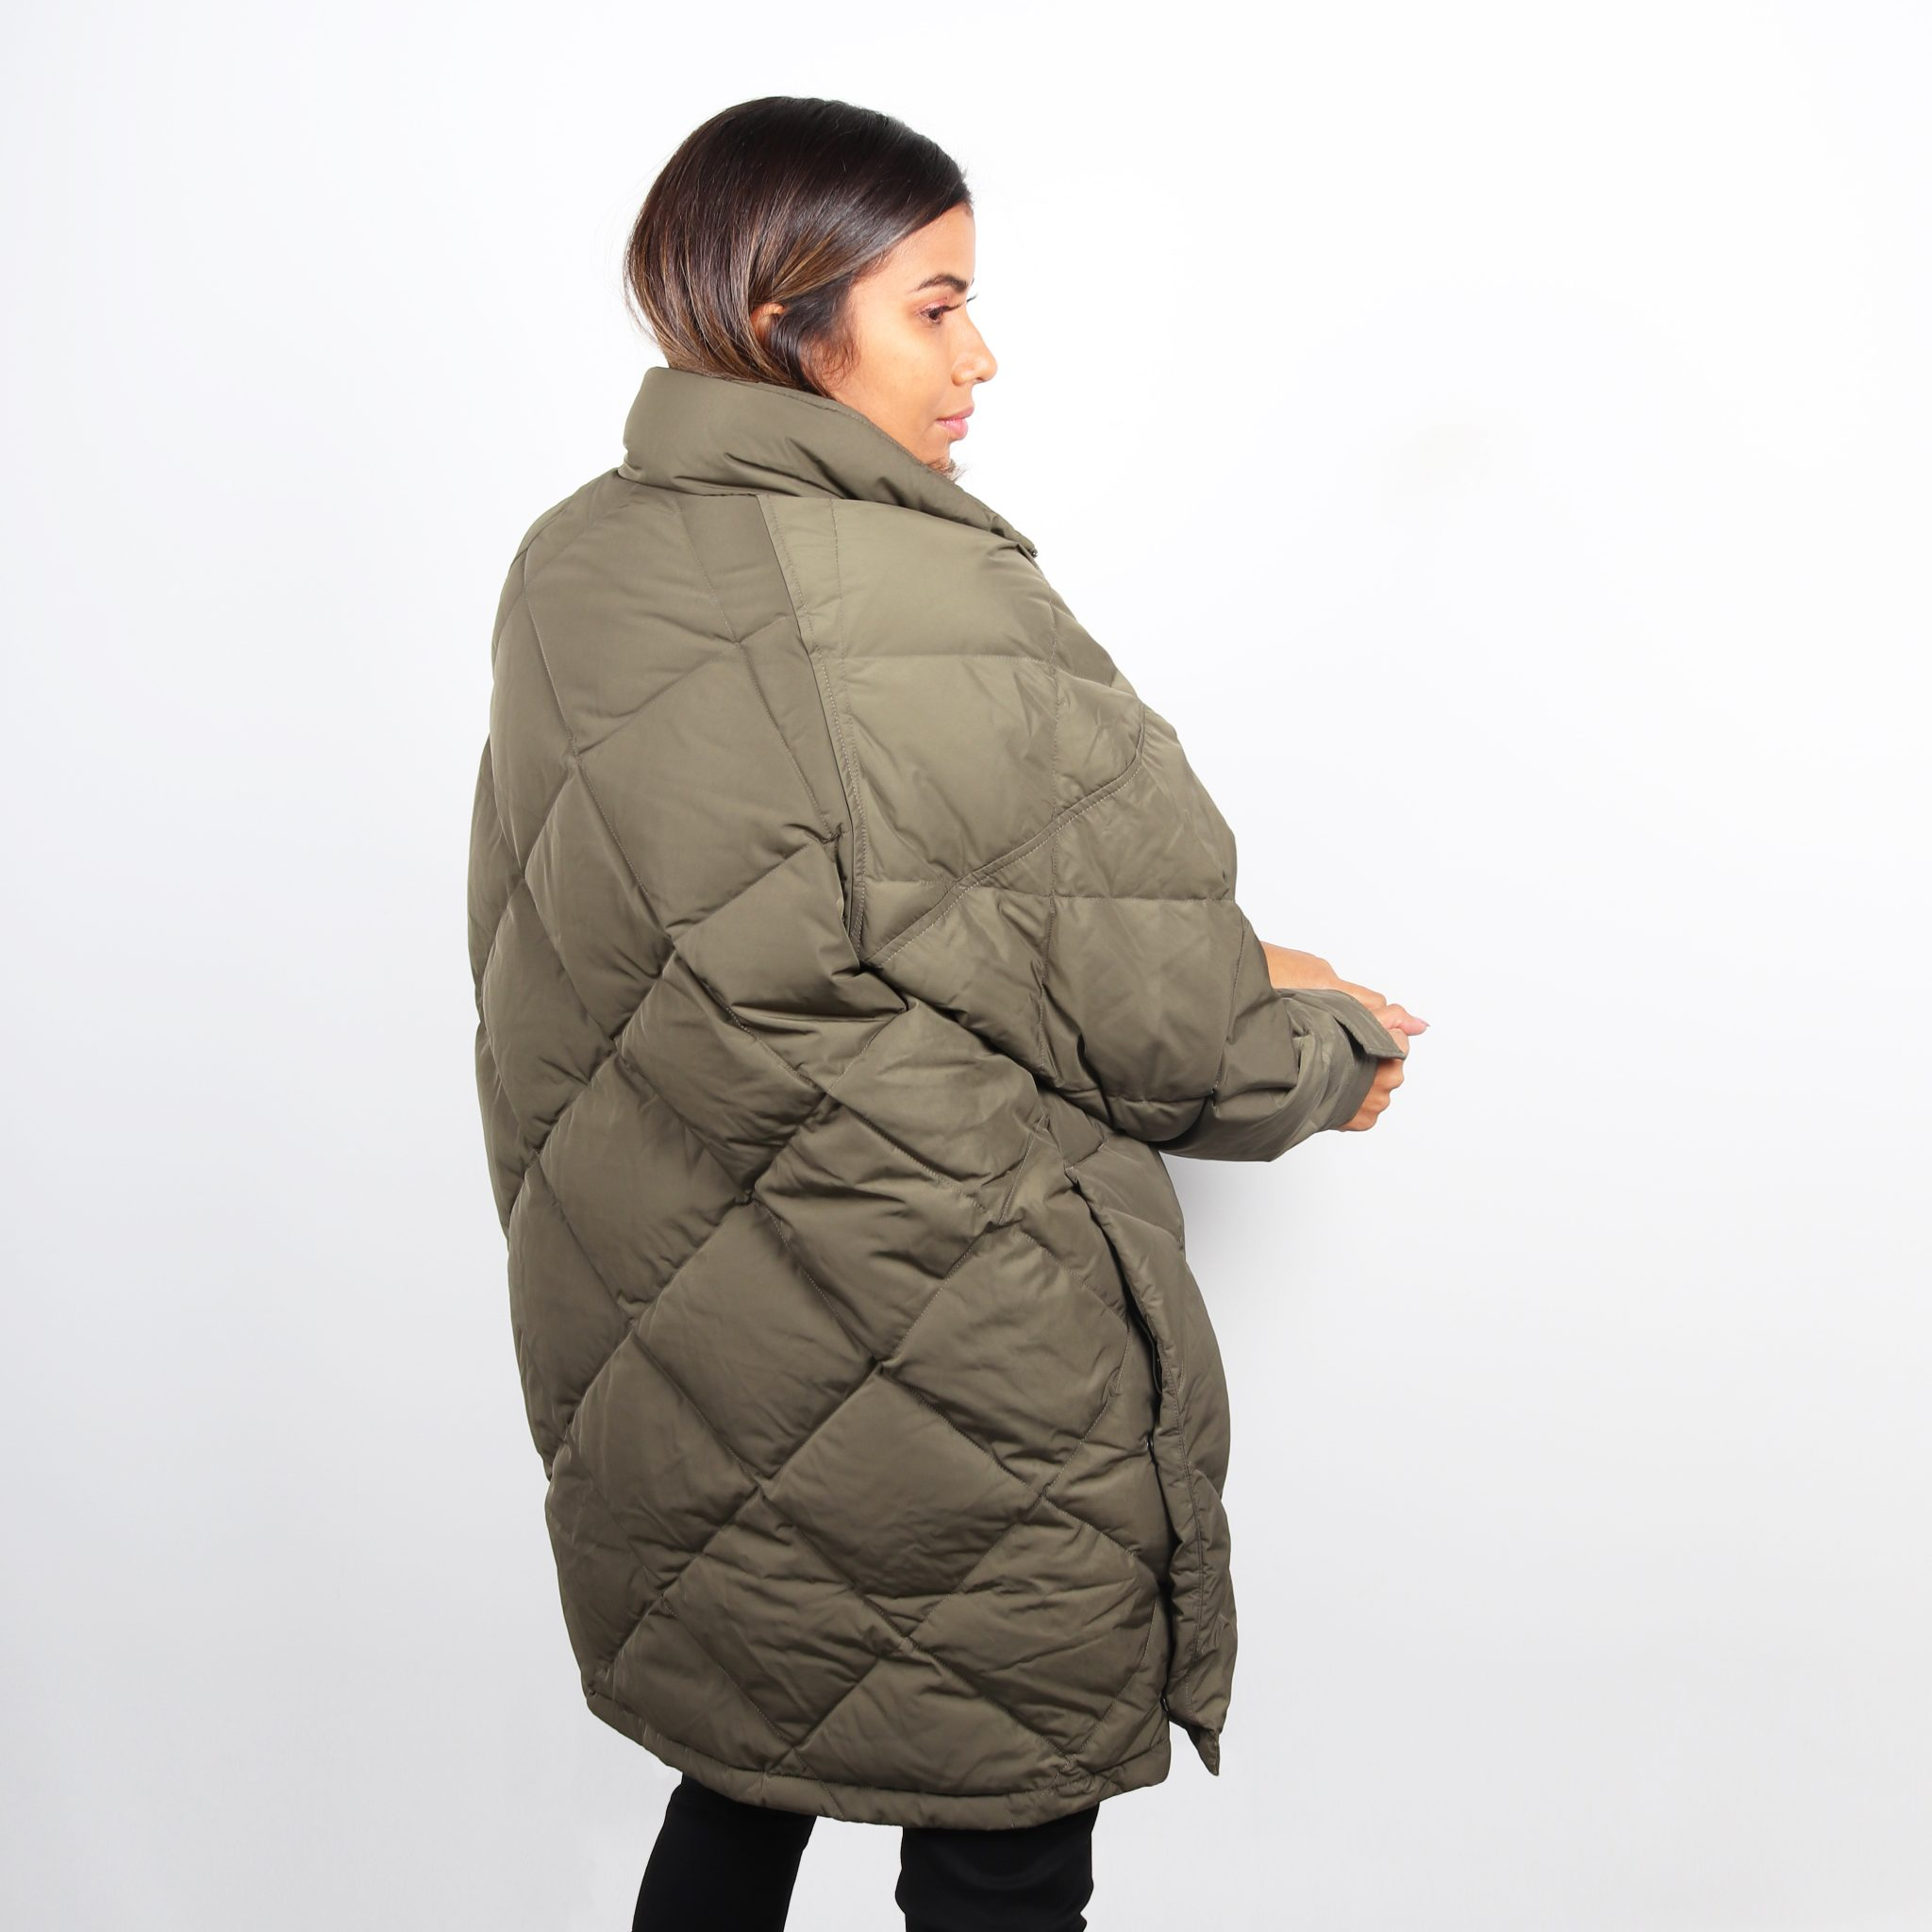 Levis Womens Diamond Quilted Puffer Jacket - Olive Night 1